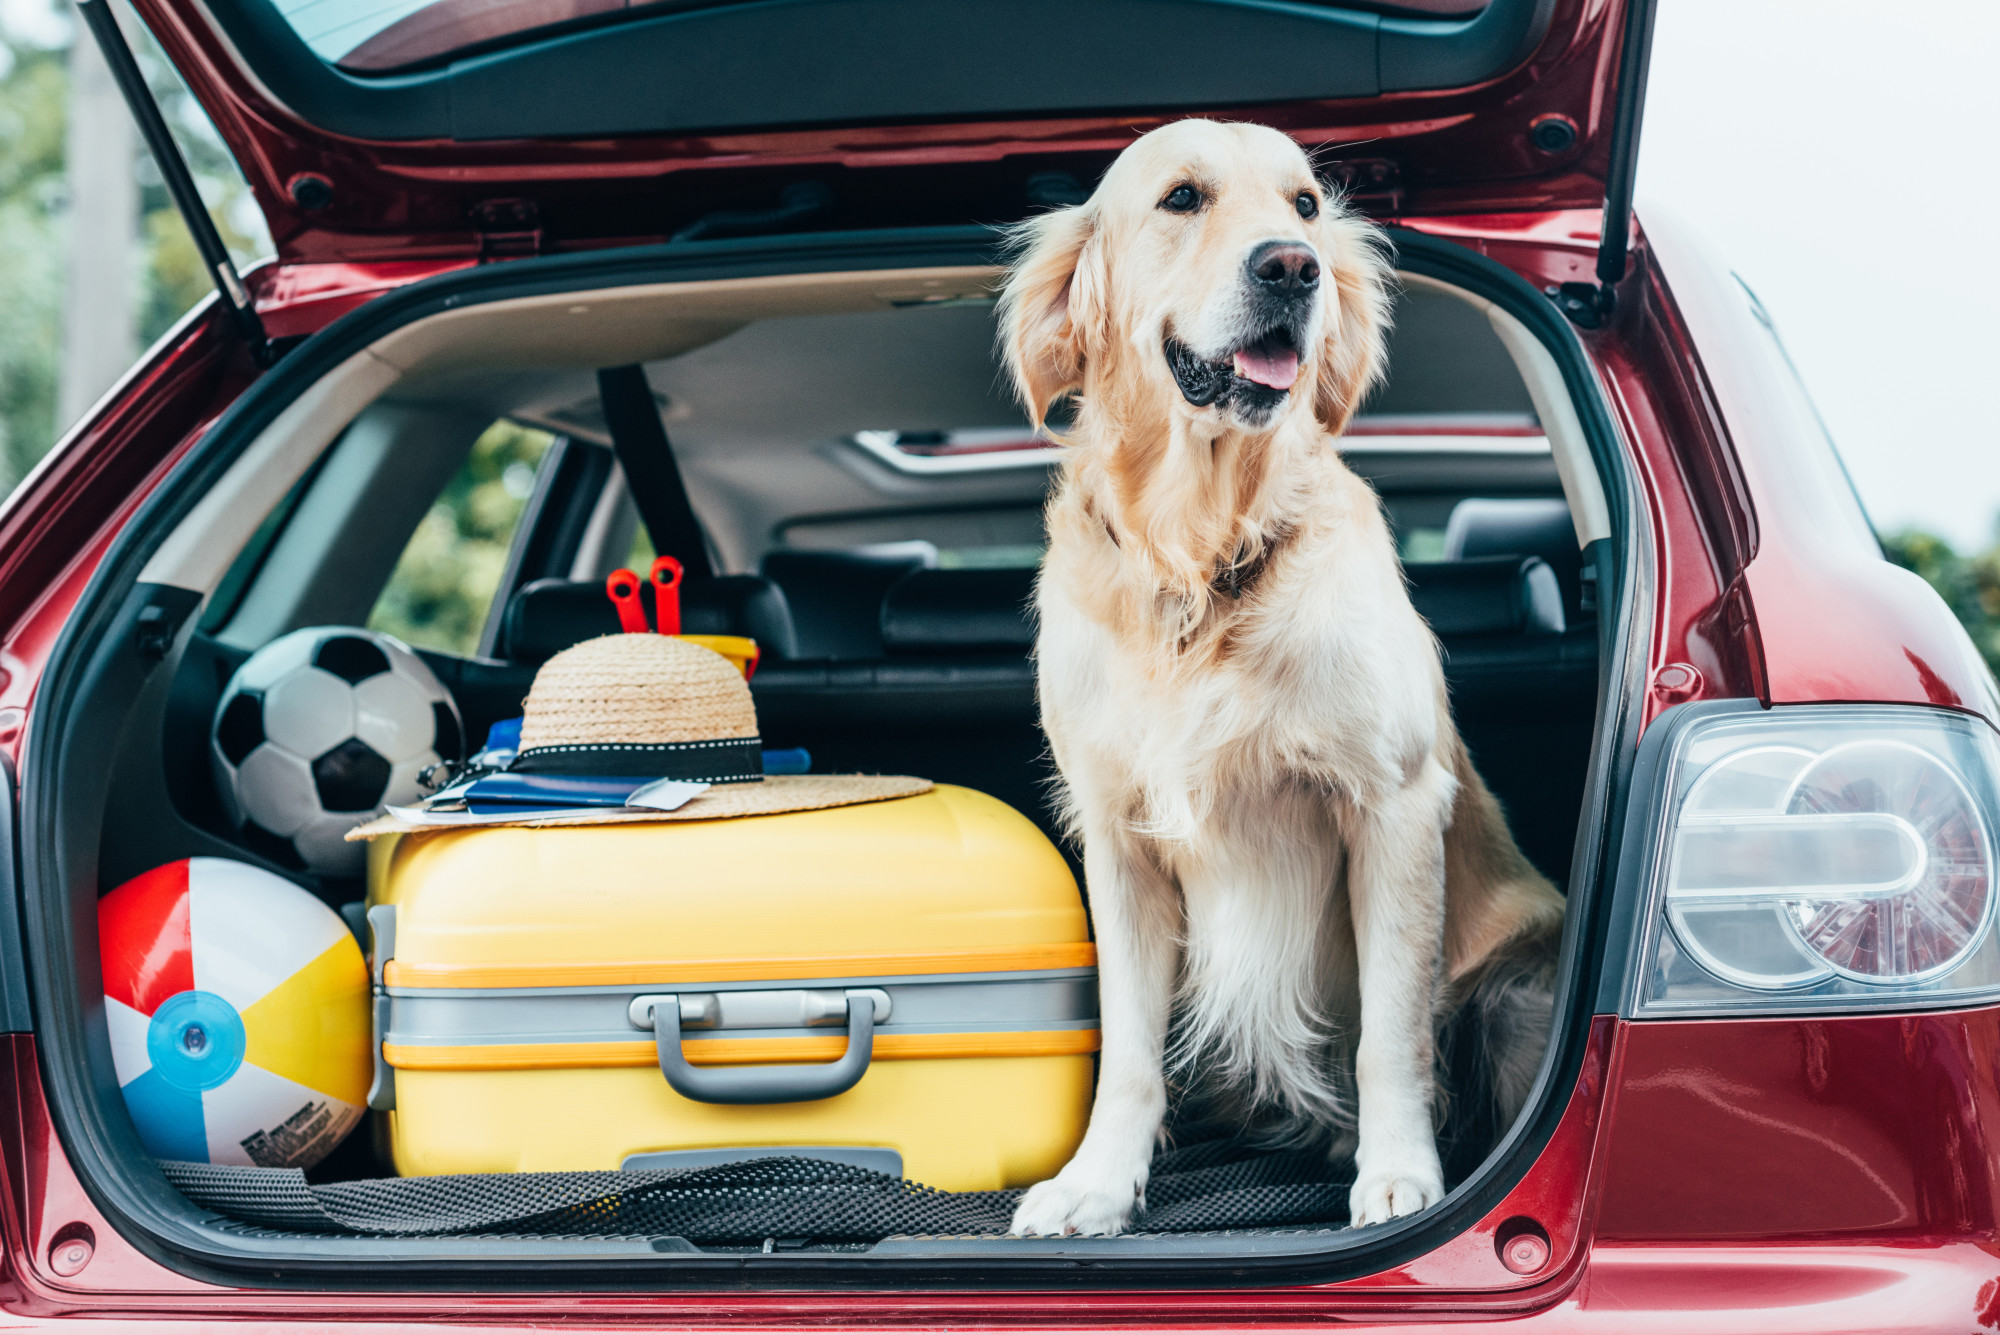 6 Crucial Tips for Traveling With a Dog